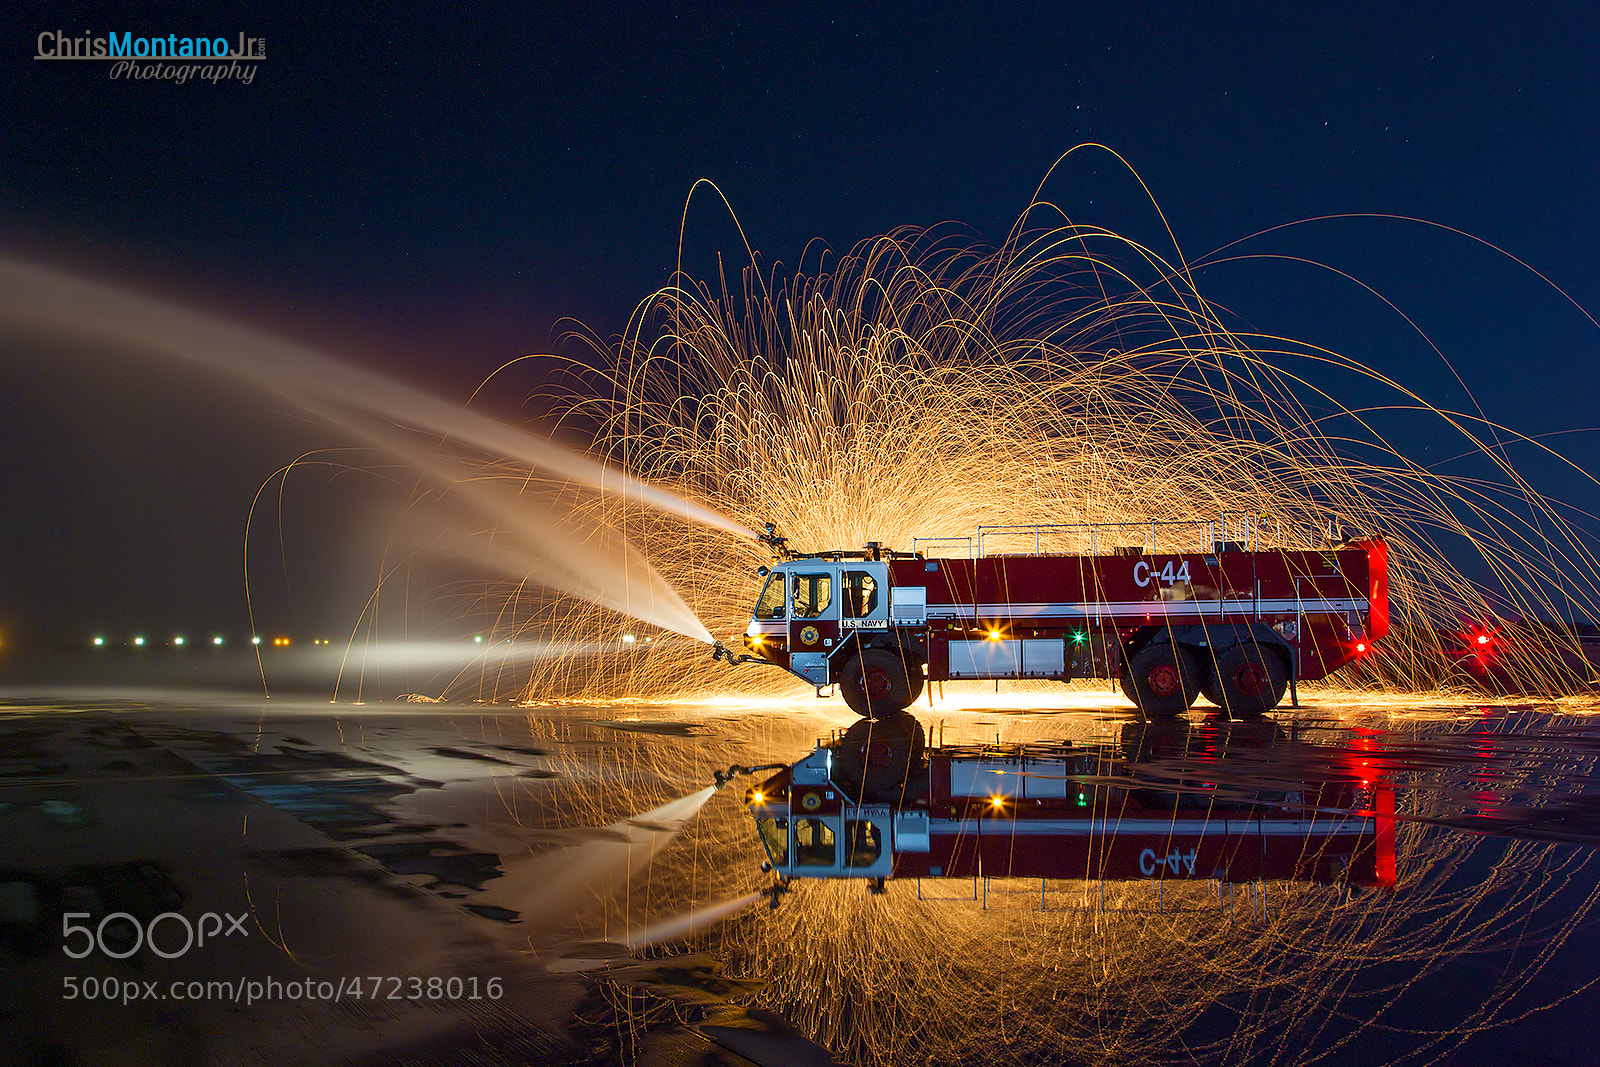 Photograph Fire Engine by Chris Montano Jr. on 500px